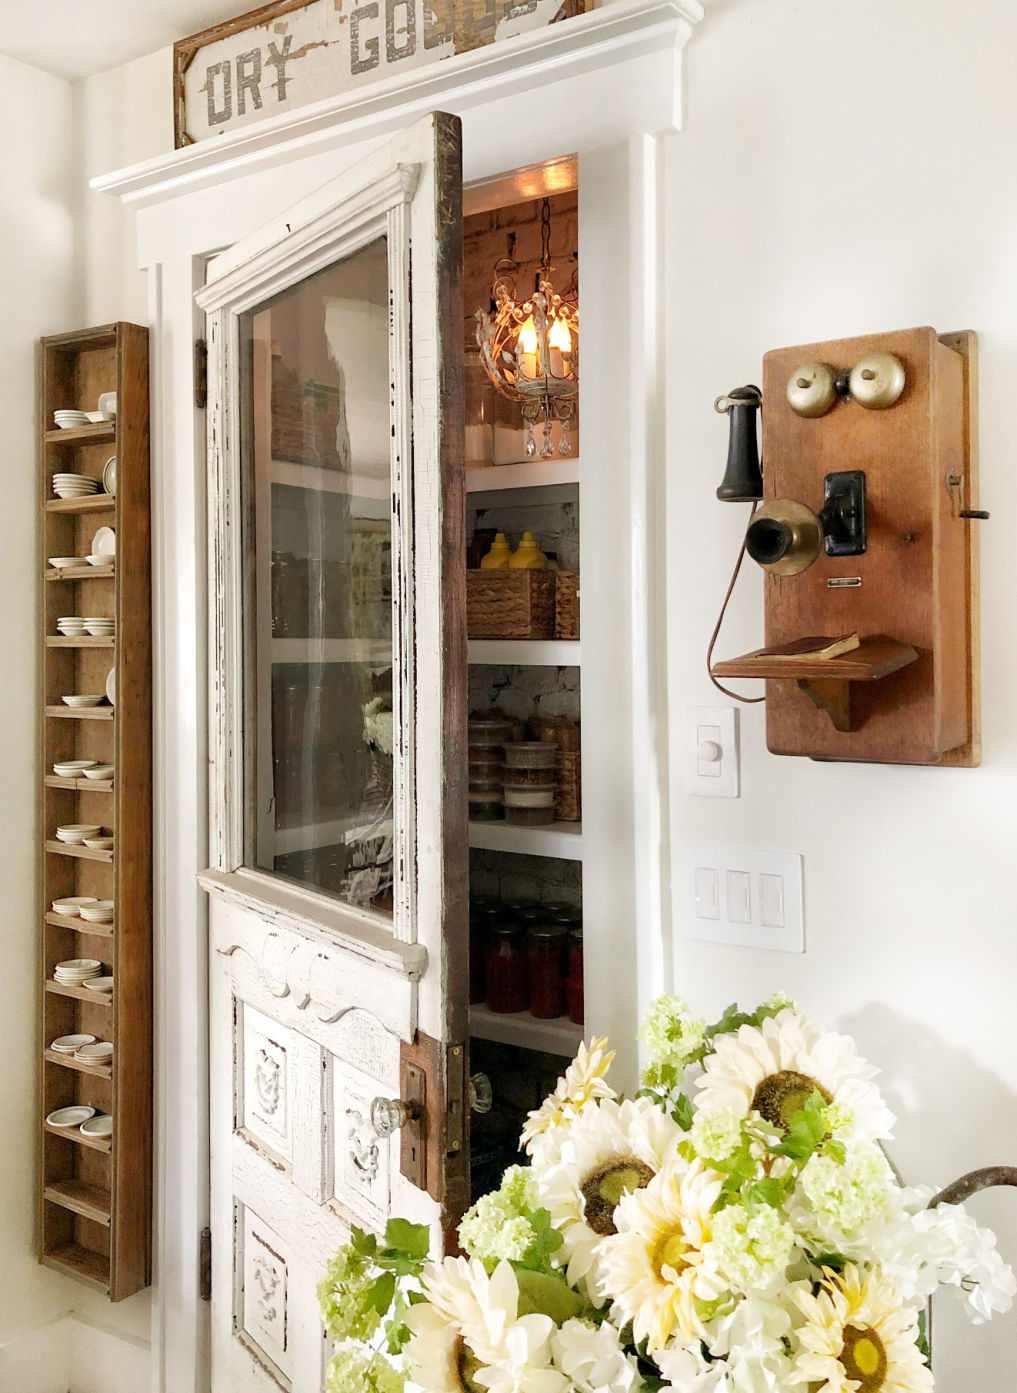 Love this antique pantry door in this farmhouse kitchen #farmhouse #pantry #pantrydoor #farmhousestyle #vintagekitchen #vintagedecor #repurpose